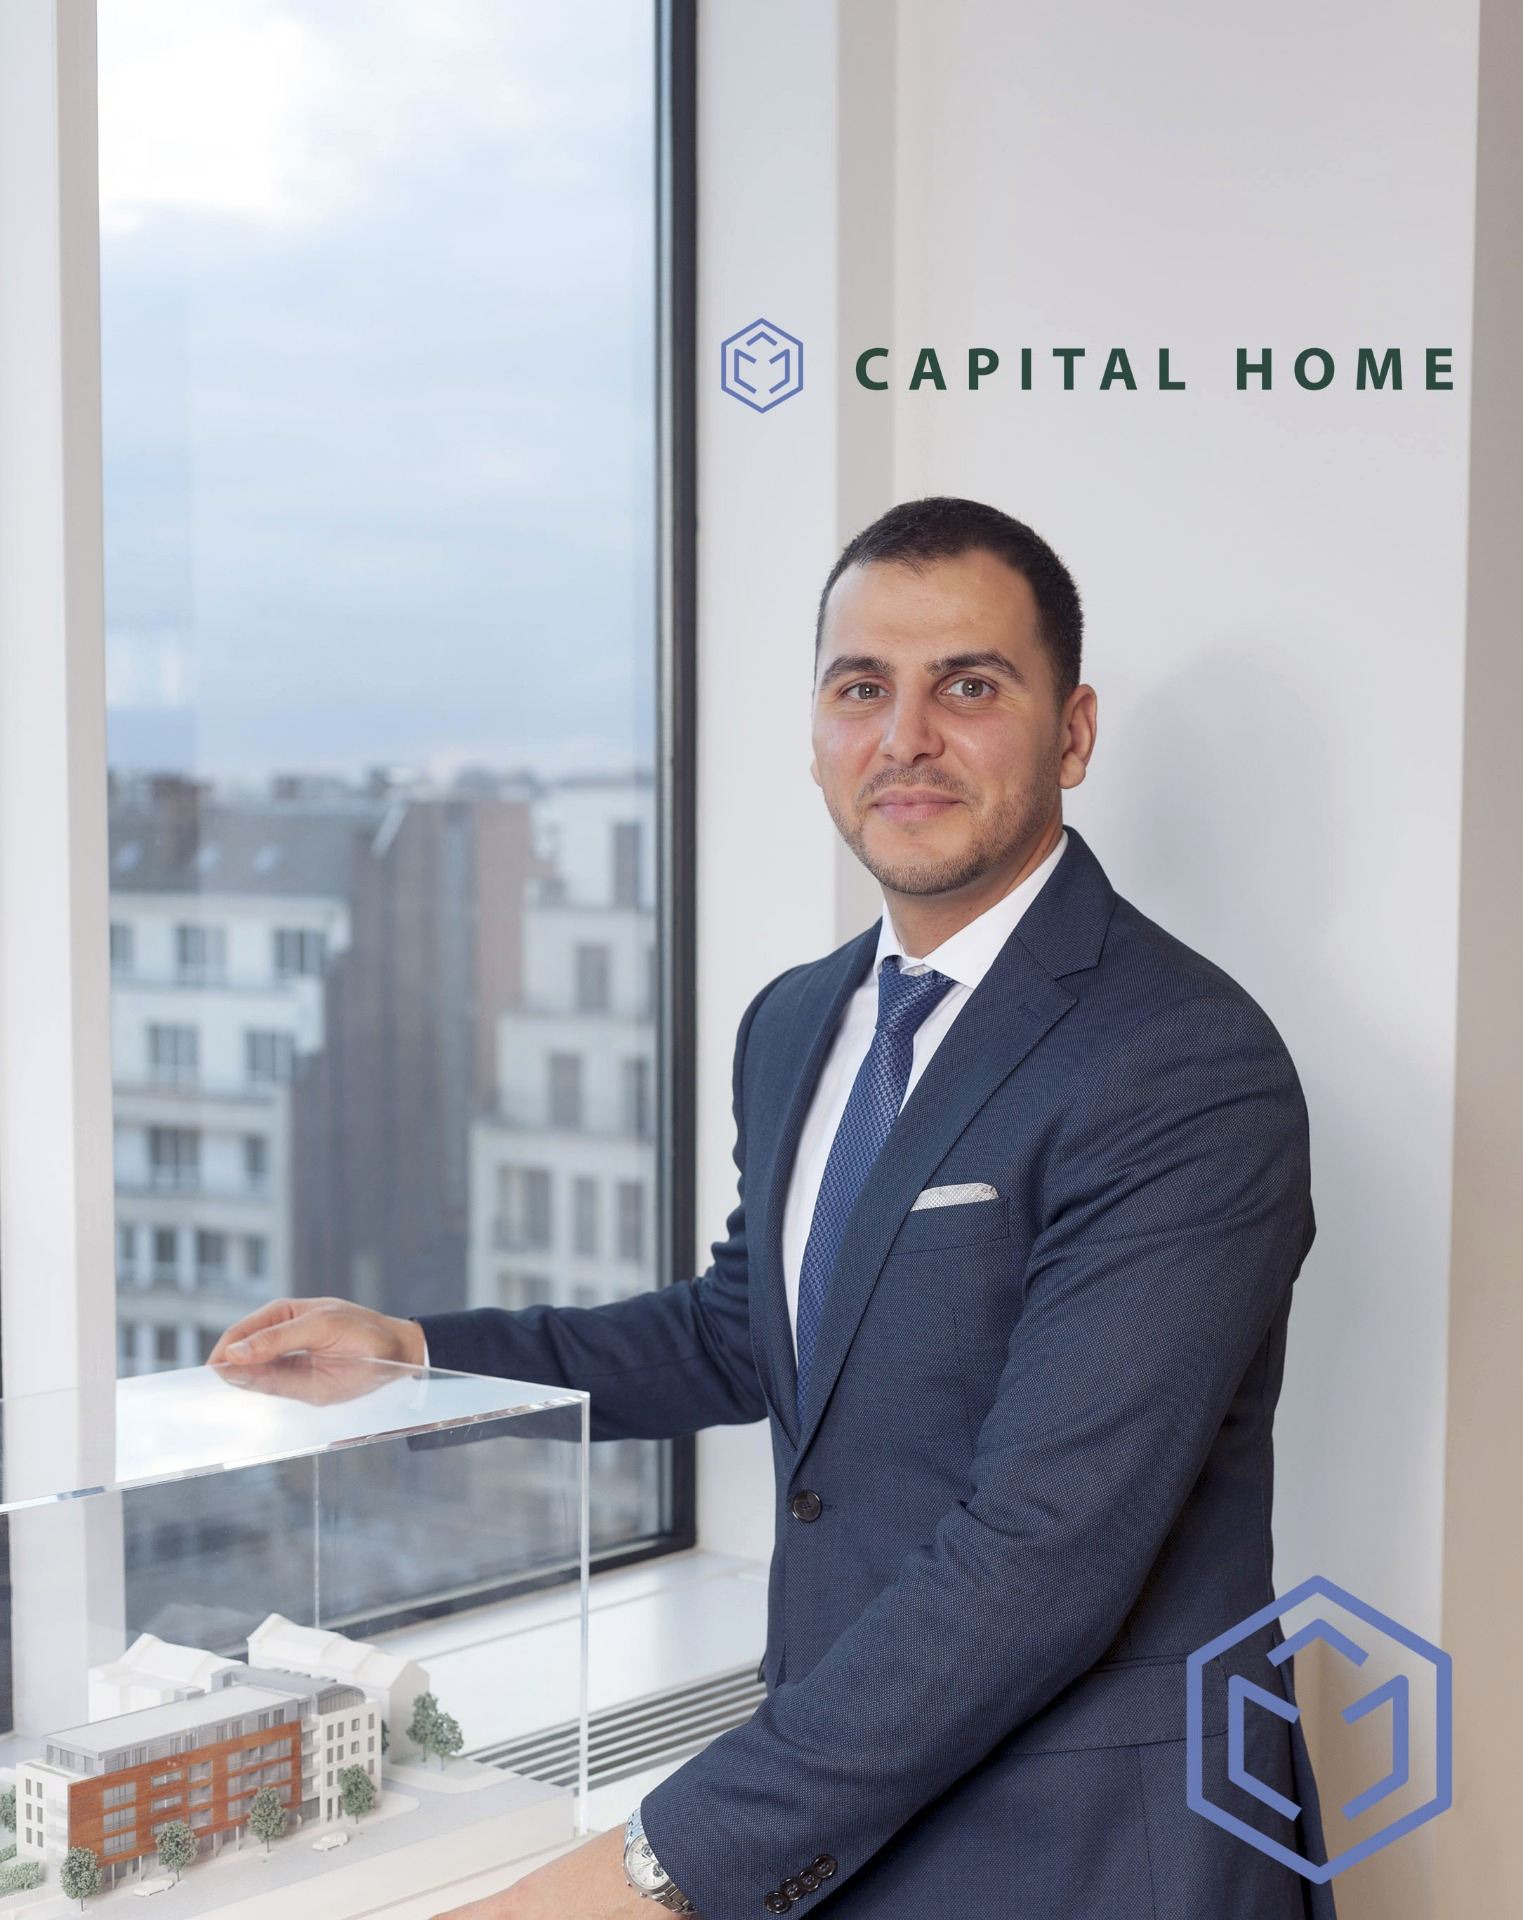 Redouane Capital Home